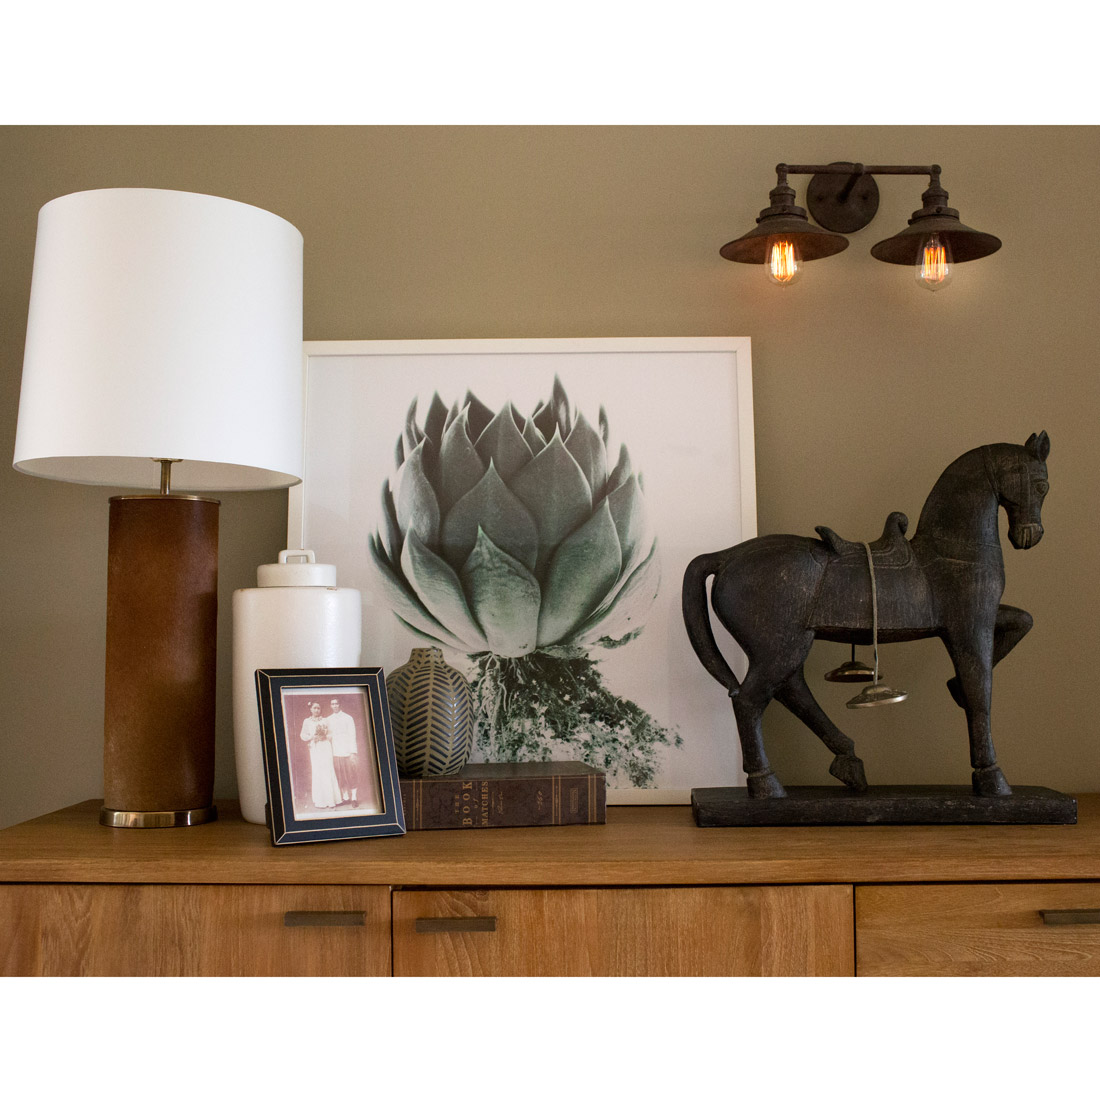 console table with decor items like a rustic sconce and horse figure with an artichoke photography art and cowhide lamp design by sara bates interior design